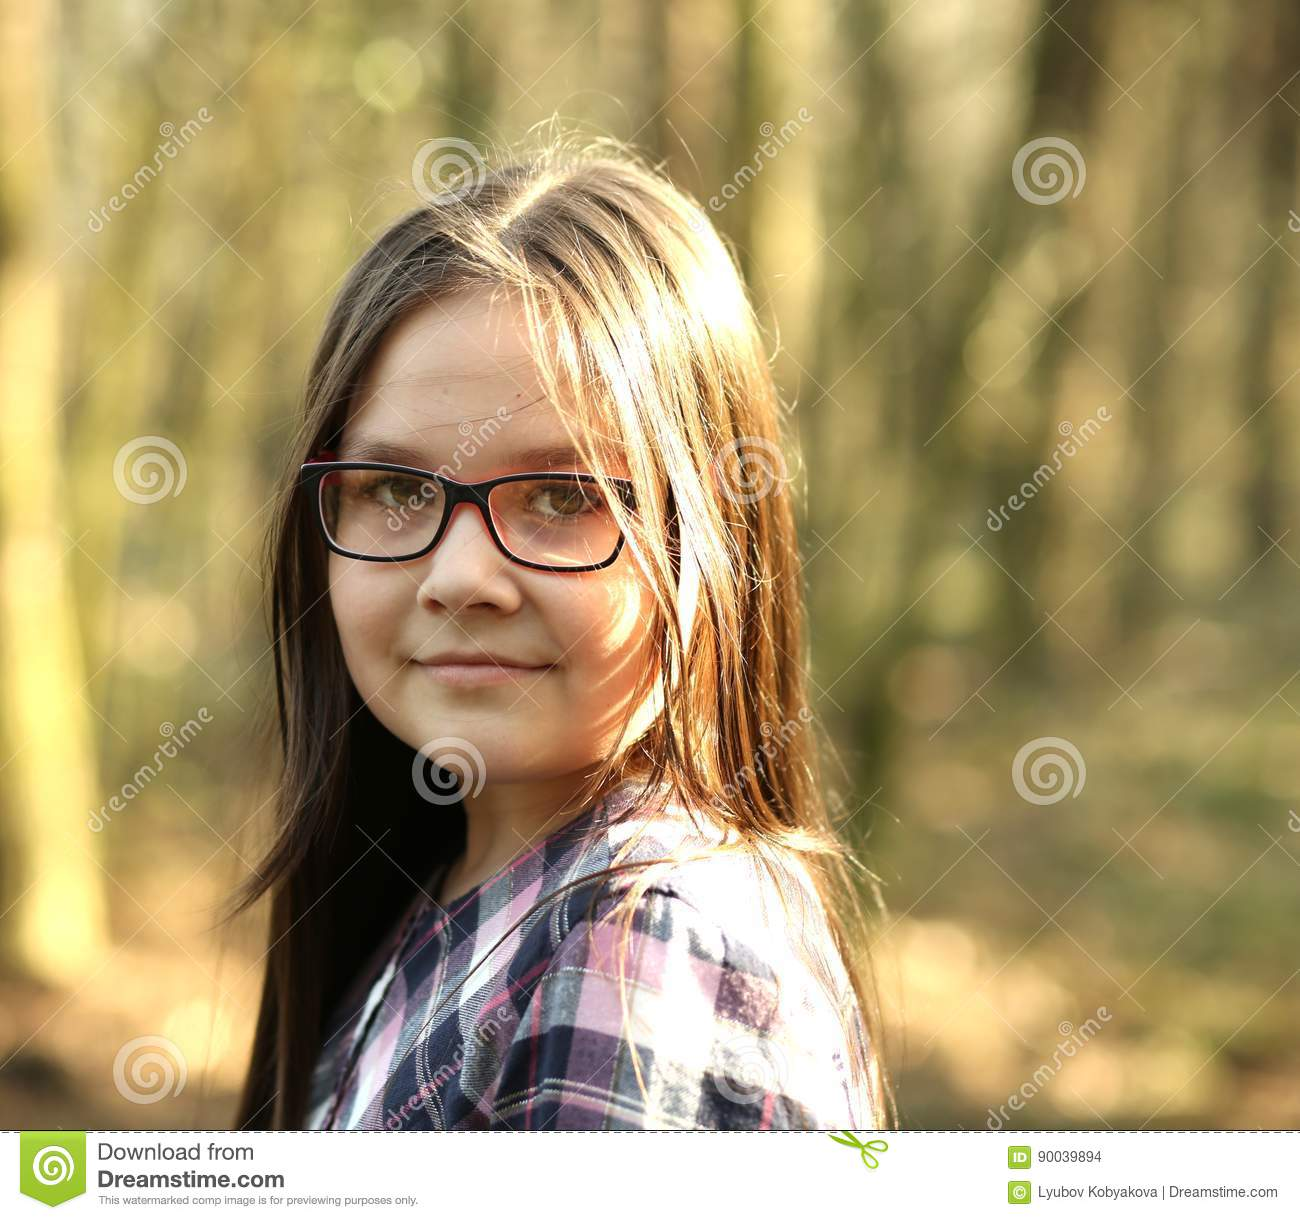 Portrait of a young girl in park